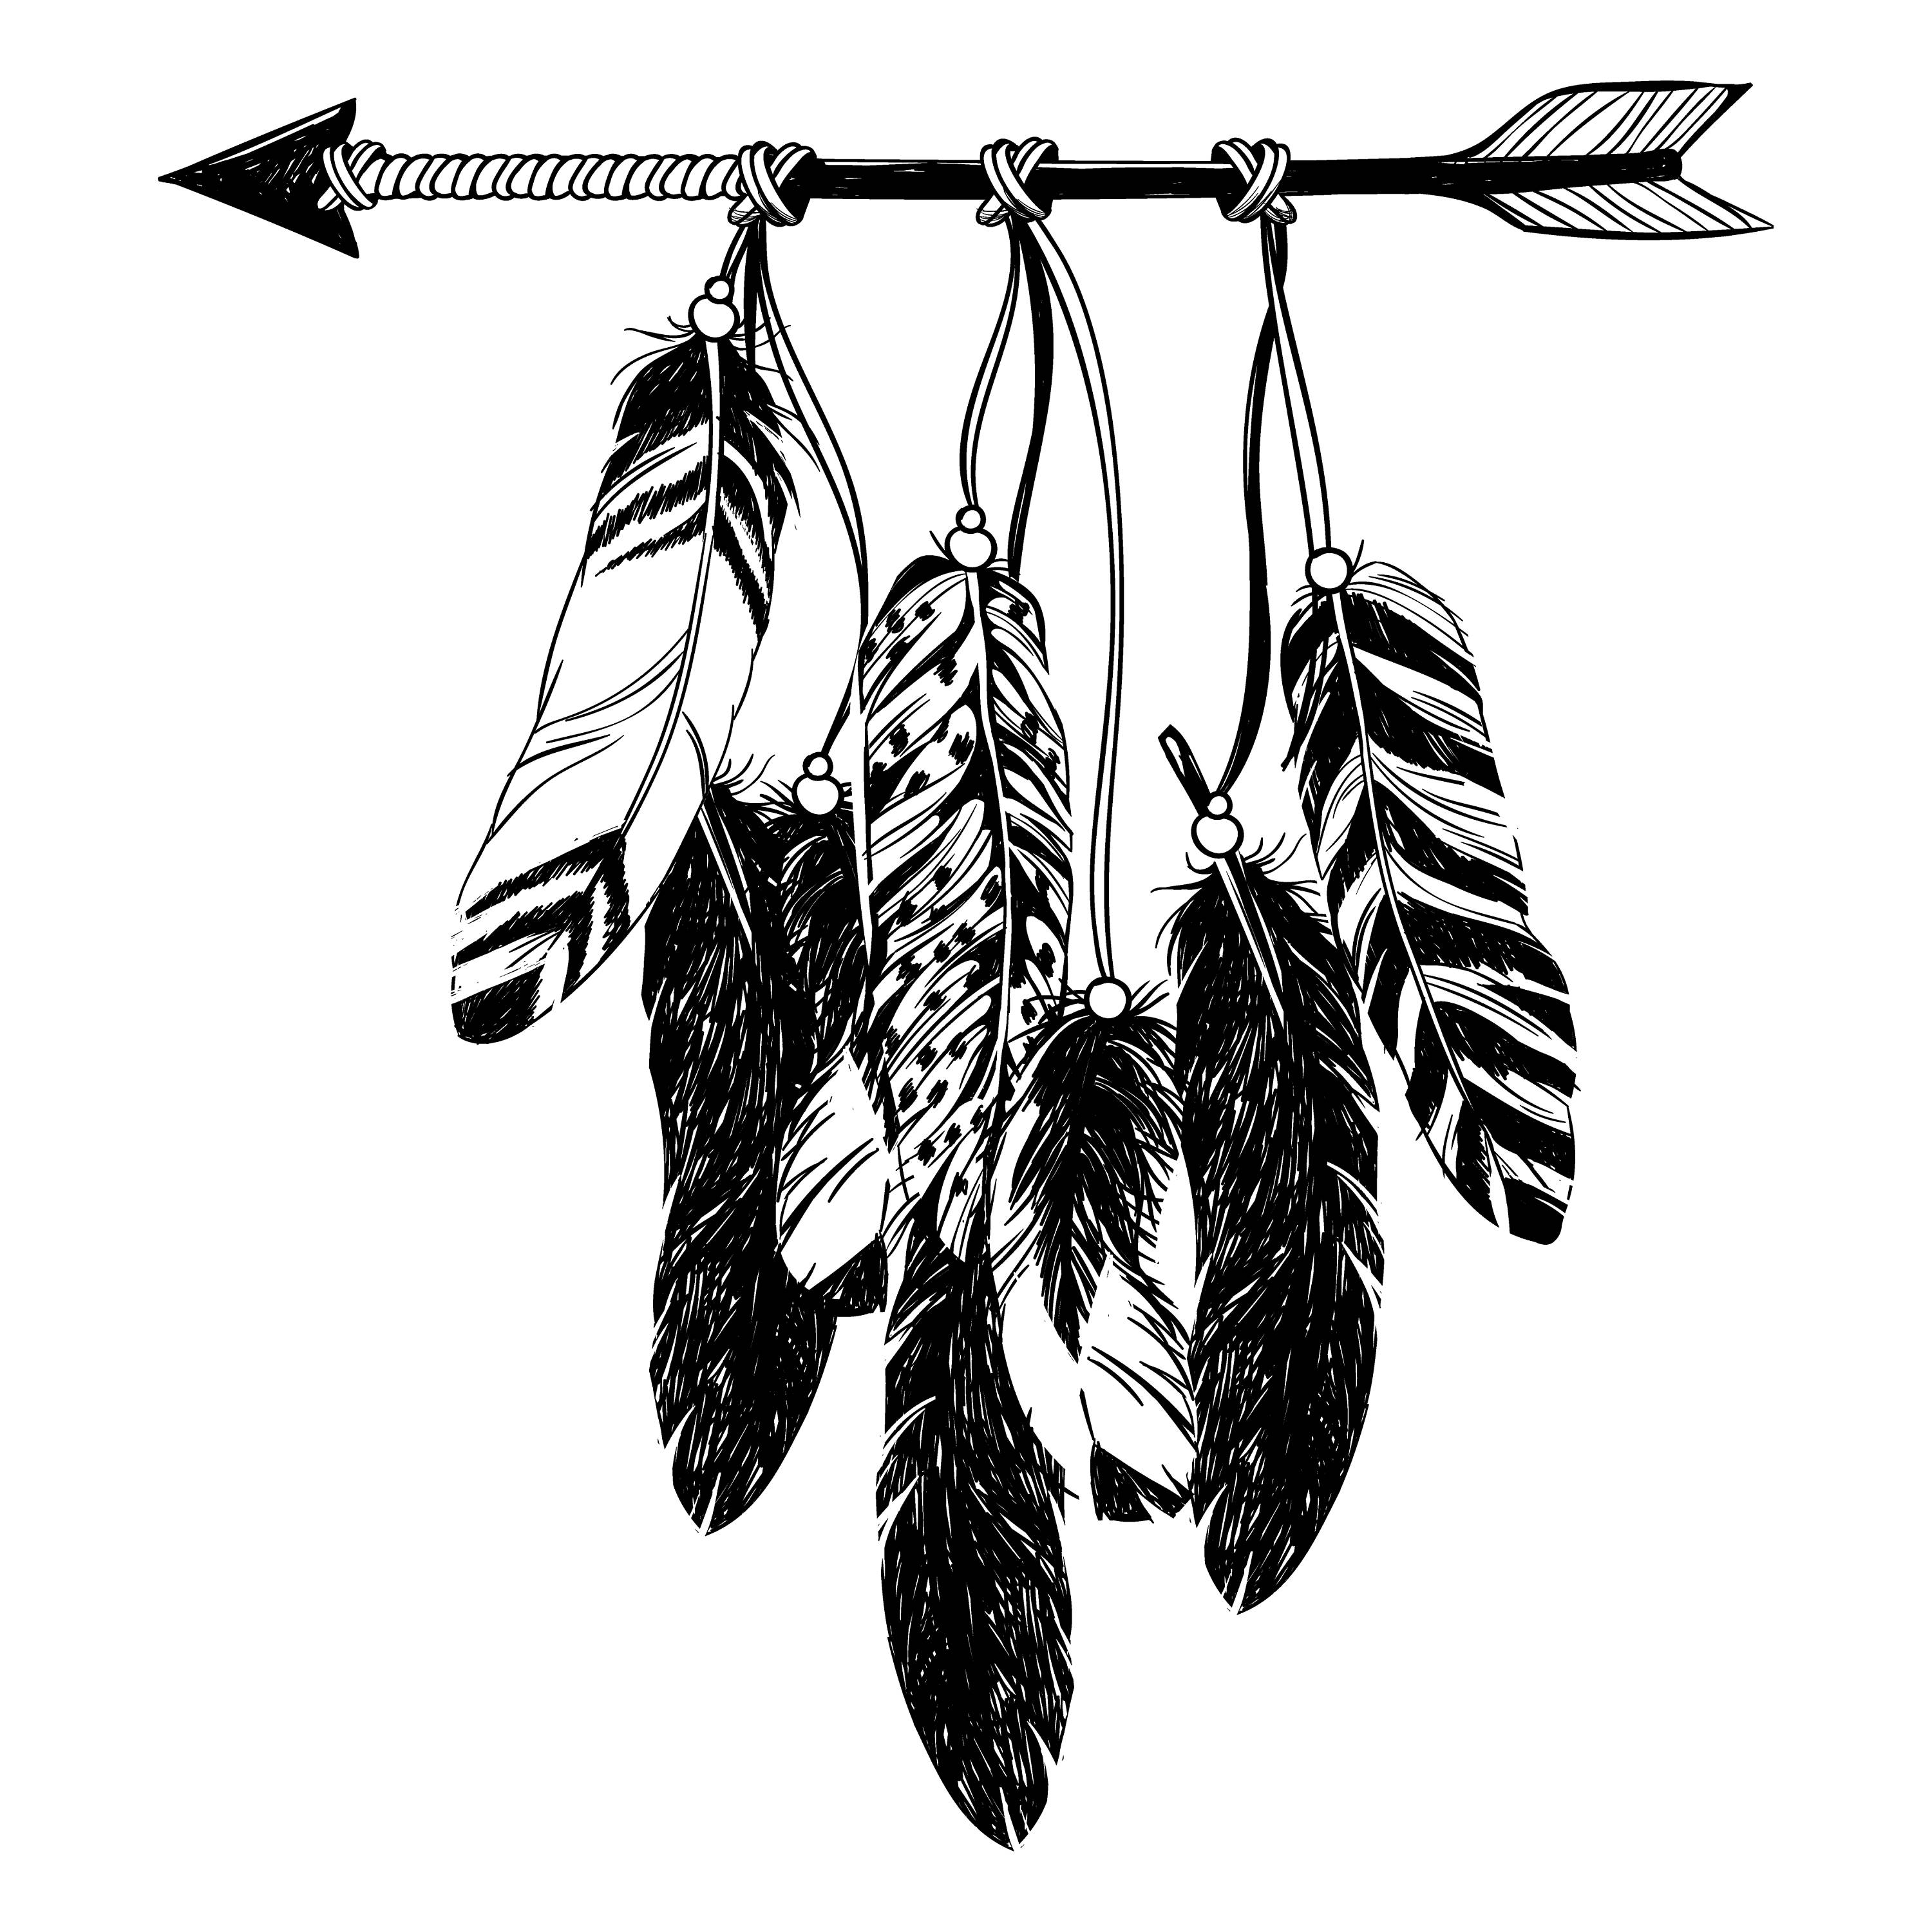 3000x3000 Boho Clipart, Boho Svg, Arrows Svg, Feathers Svg, Arrows Clip Art